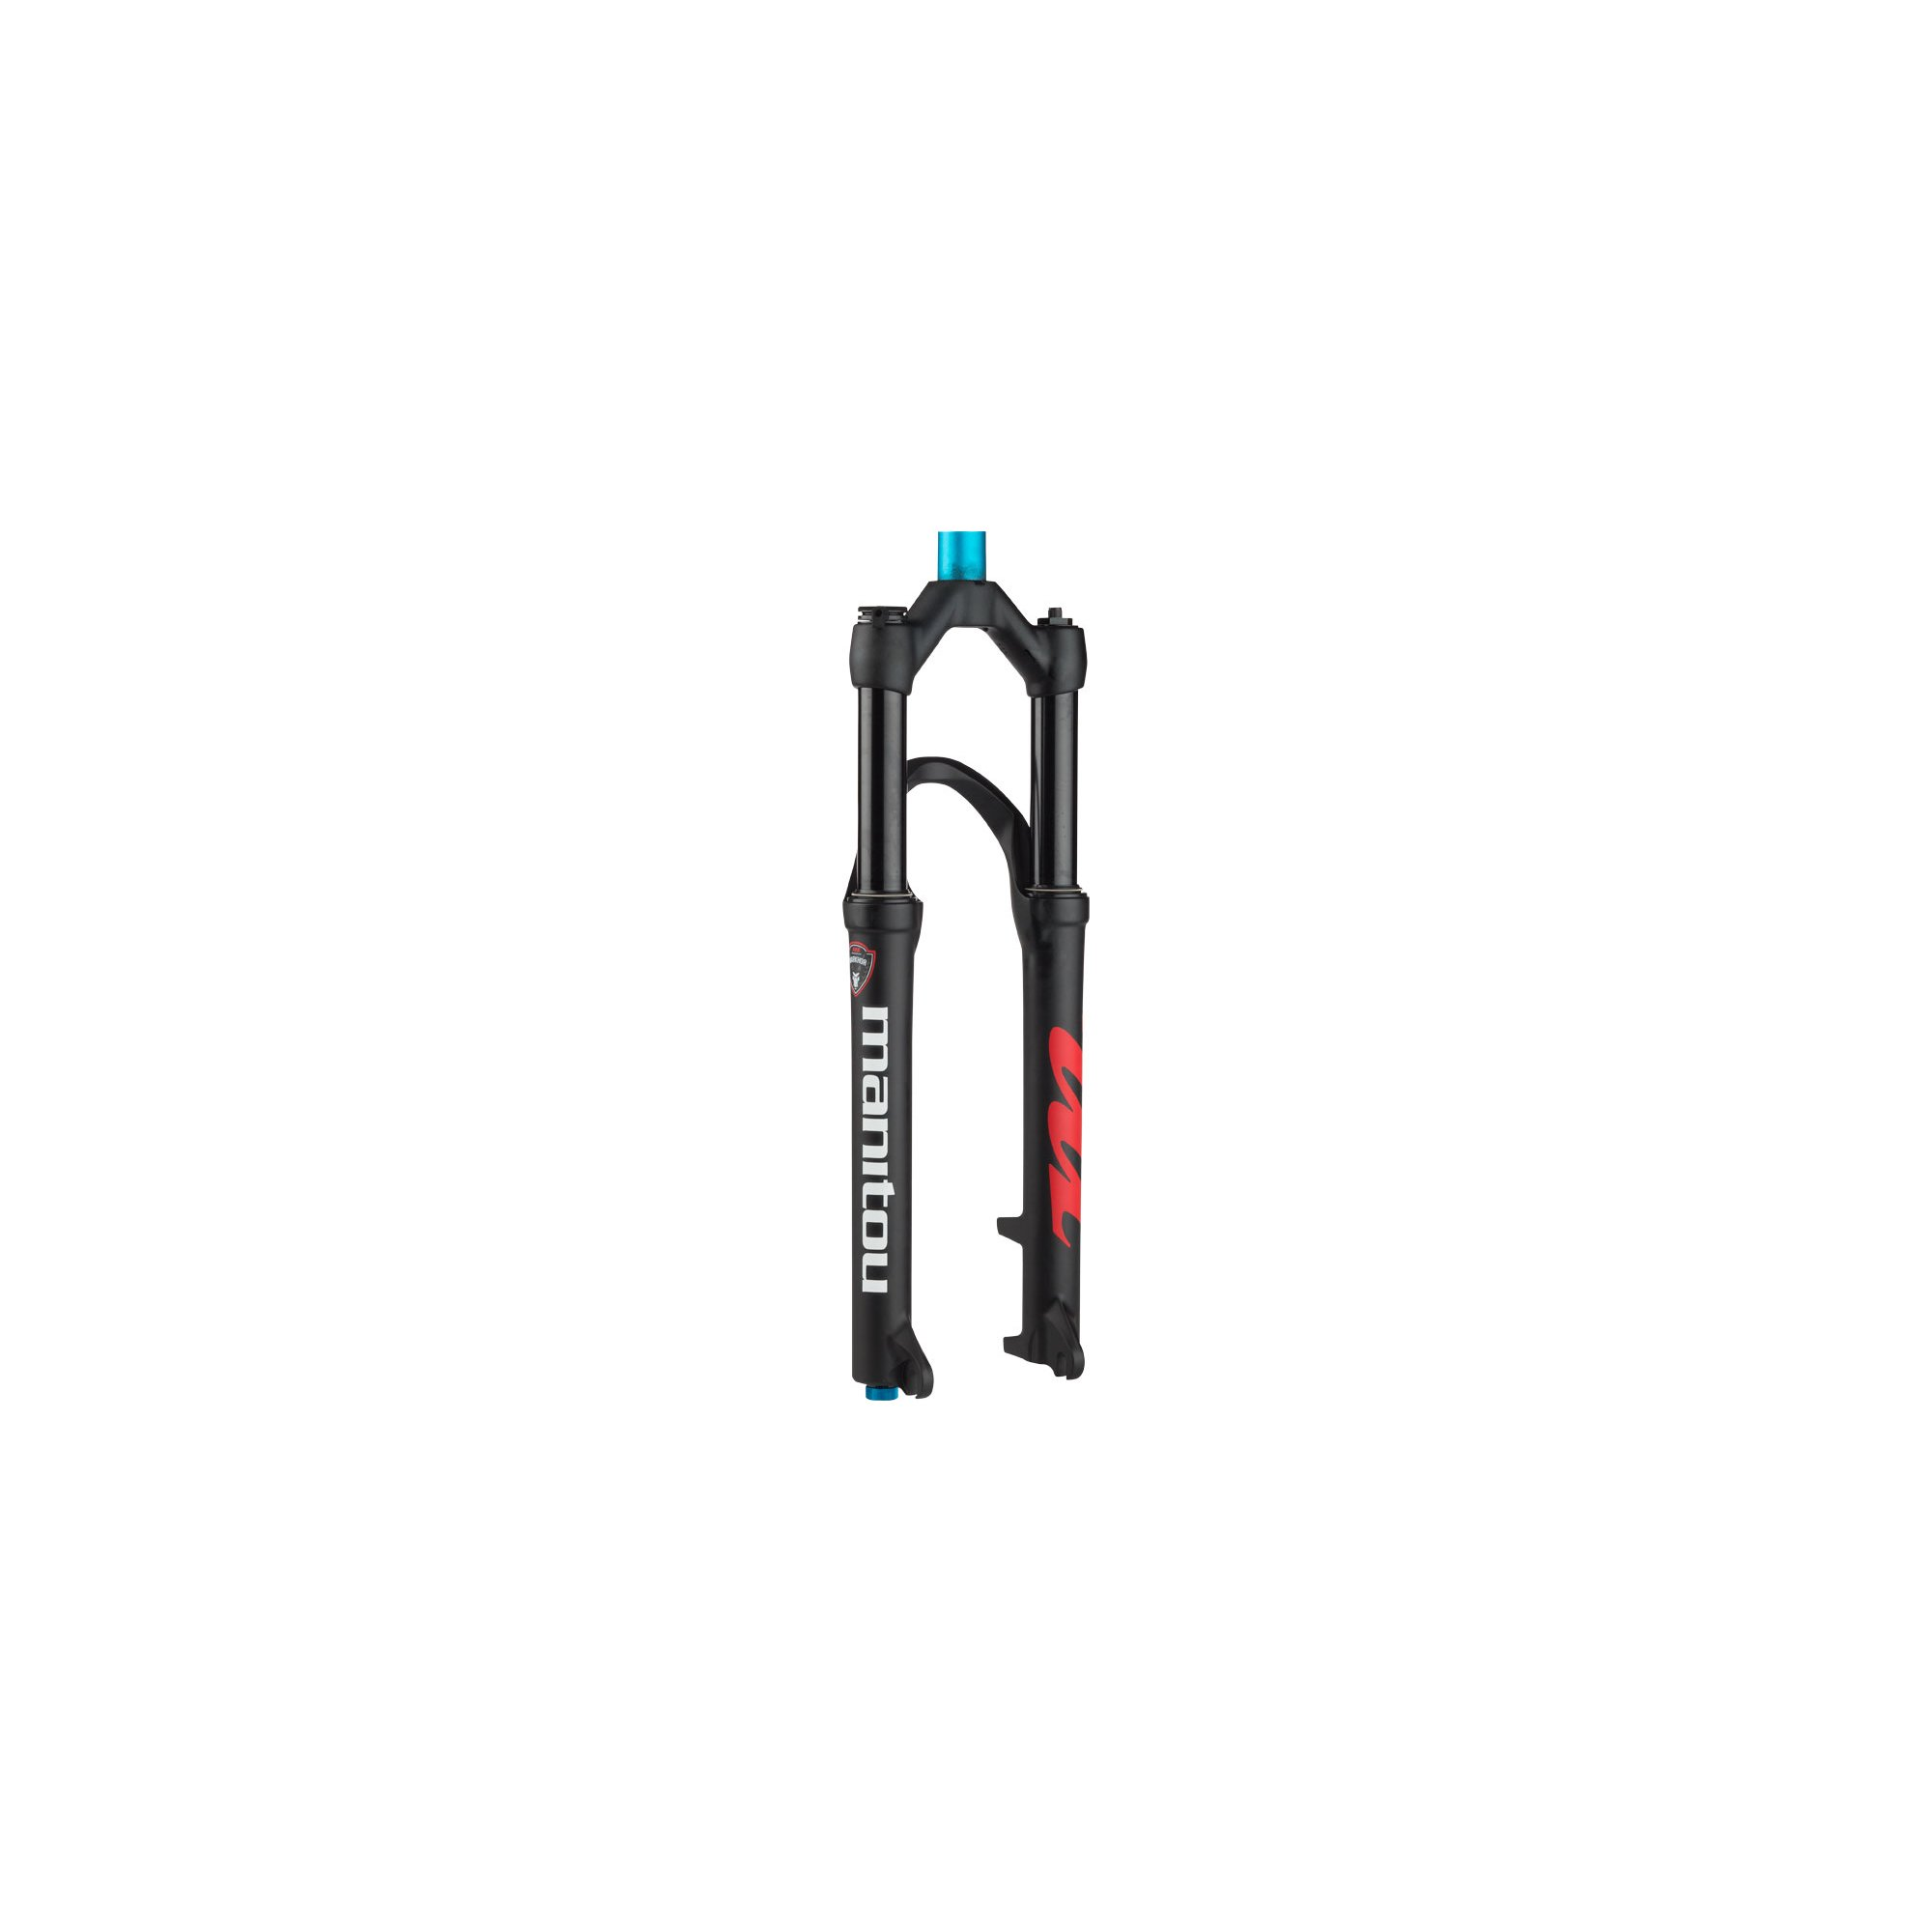 Manitou Markhor Fork 26'' 100mm Travel, 9mm Axle, Matte Black by Manitou